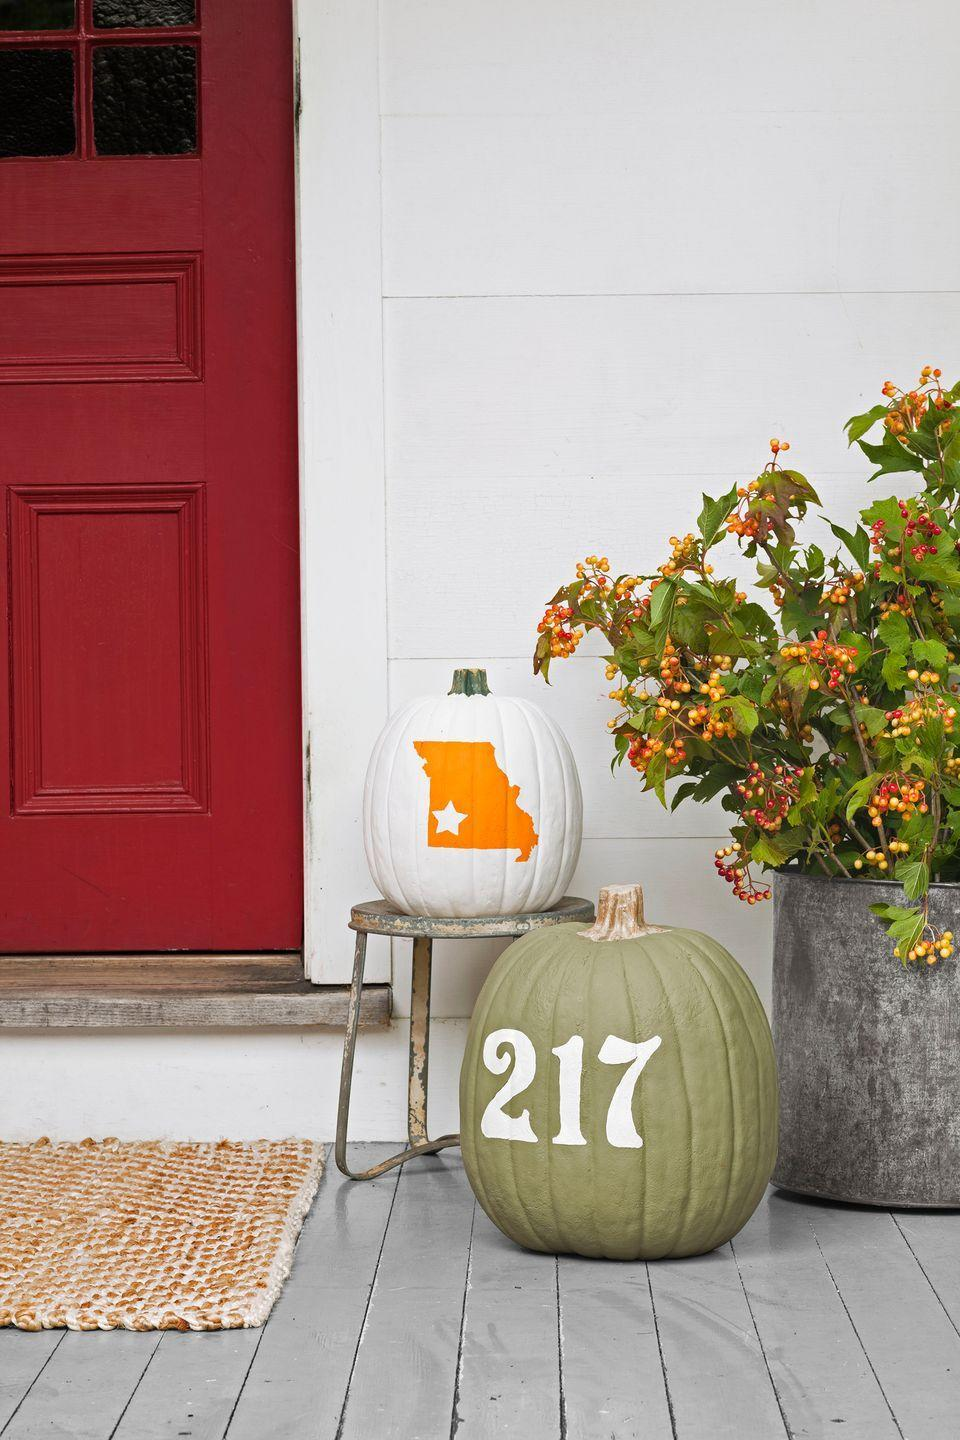 """<p>Along with your house number, you can place your hometown right on your pumpkin for all to see. First, purchase a decal of your state's shape to apply to your pumpkin. Proceed to cover it in two coats of acrylic paint (be sure to wait 30 minutes for each coat to dry). Remove the decal once your pumpkin is dry.</p><p><a class=""""link rapid-noclick-resp"""" href=""""https://go.redirectingat.com?id=74968X1596630&url=https%3A%2F%2Fwww.etsy.com%2Flisting%2F206420143%2Ffree-shipping-state-outline-with-heart&sref=https%3A%2F%2Fwww.goodhousekeeping.com%2Fholidays%2Fhalloween-ideas%2Fg2592%2Fpumpkin-painting-ideas%2F"""" rel=""""nofollow noopener"""" target=""""_blank"""" data-ylk=""""slk:SHOP STATE DECAL"""">SHOP STATE DECAL</a></p>"""